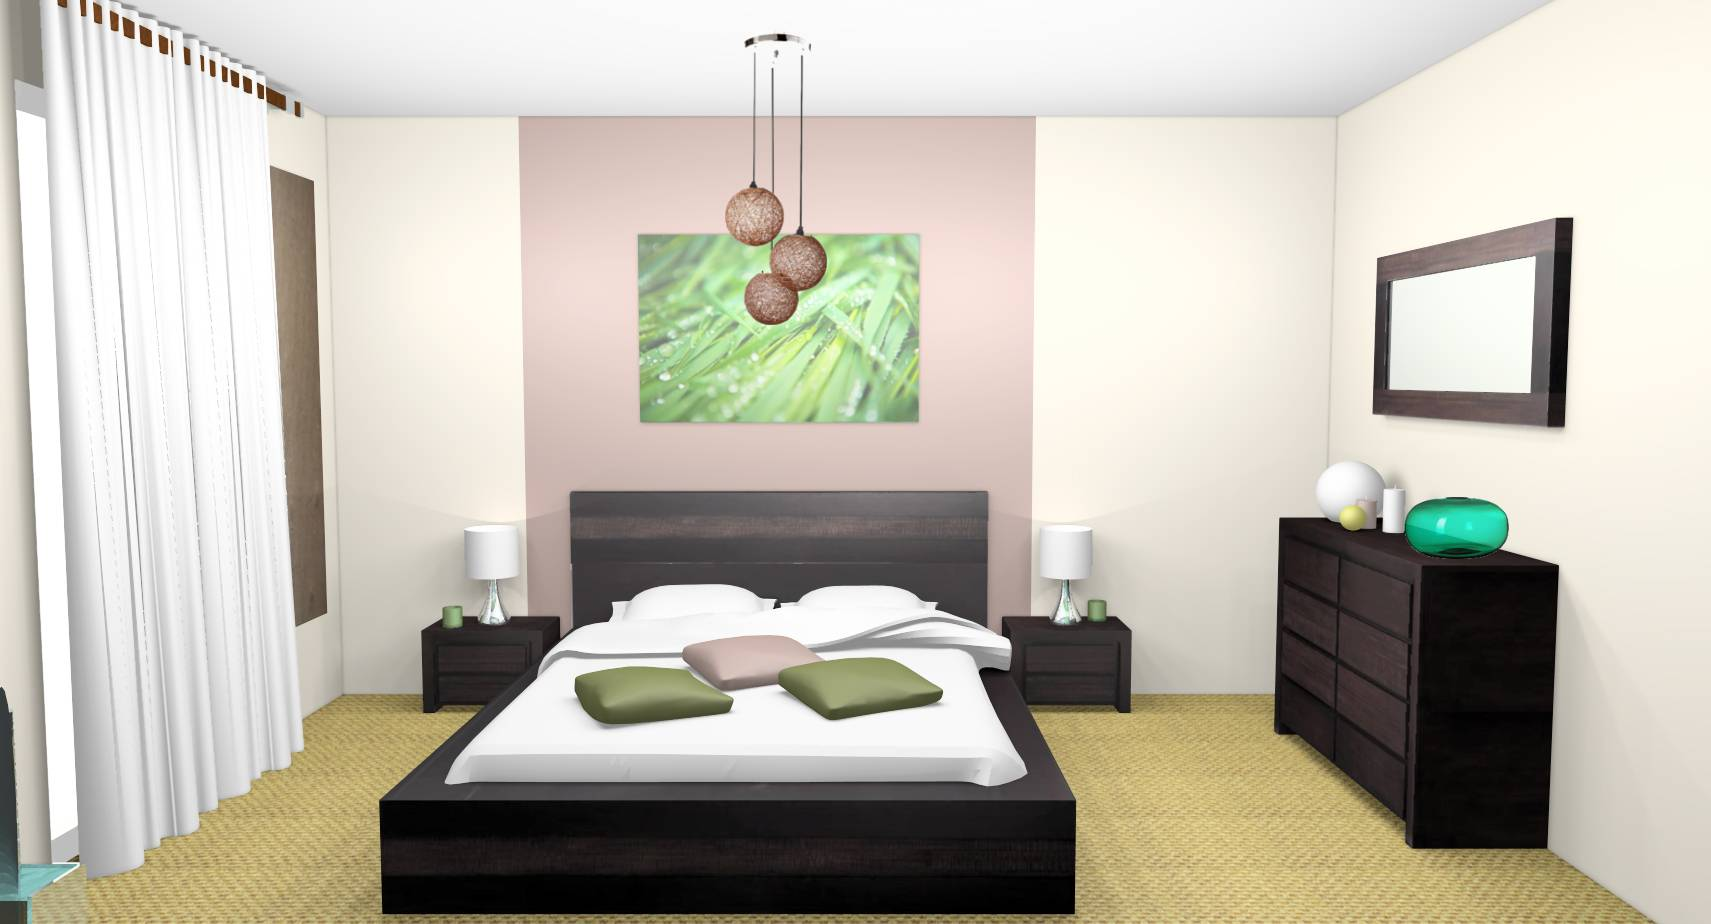 D co chambre zen adulte for Decoration de chambre d adulte